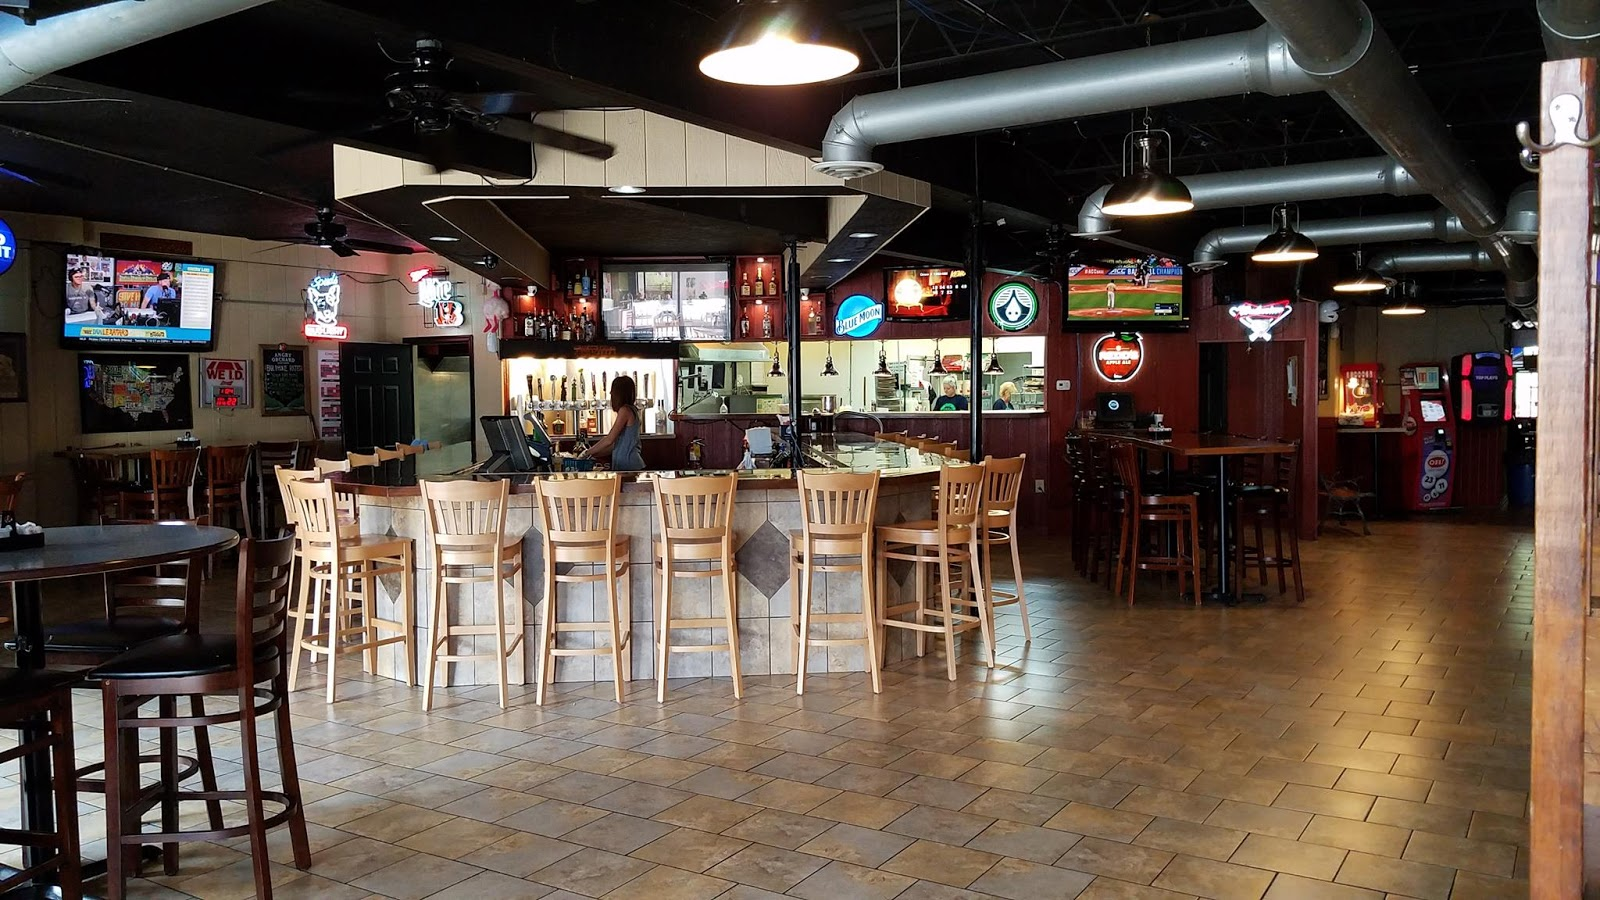 Gibby's Eatery and Sports Bar interior